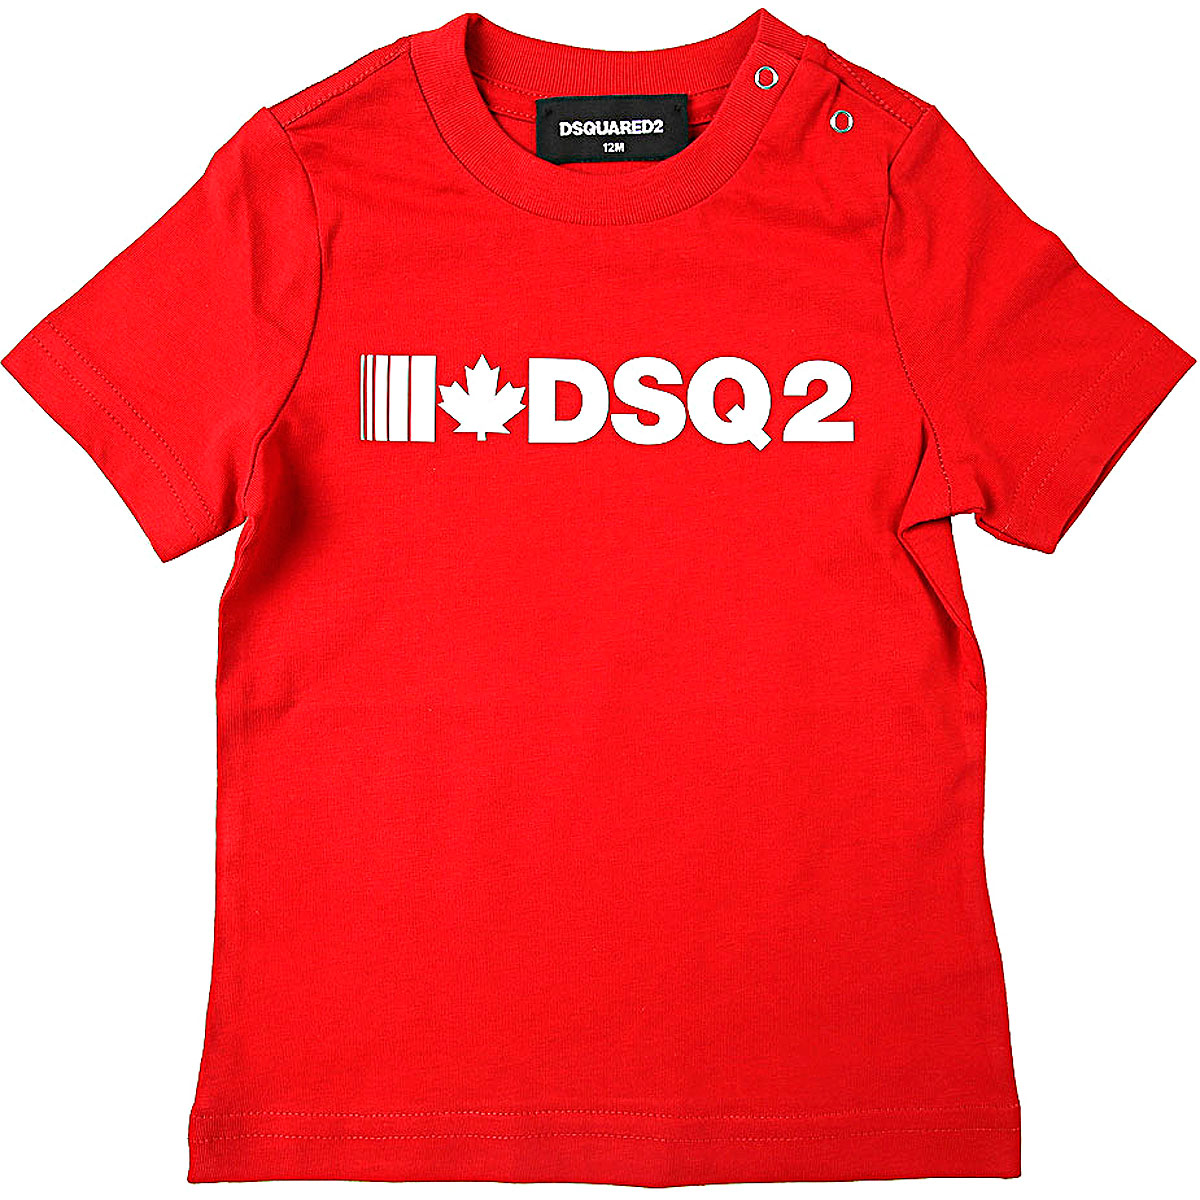 Dsquared2 Baby T-Shirt for Boys On Sale, Red, Cotton, 2019, 12 M 18M 2Y 3Y 6M 9M